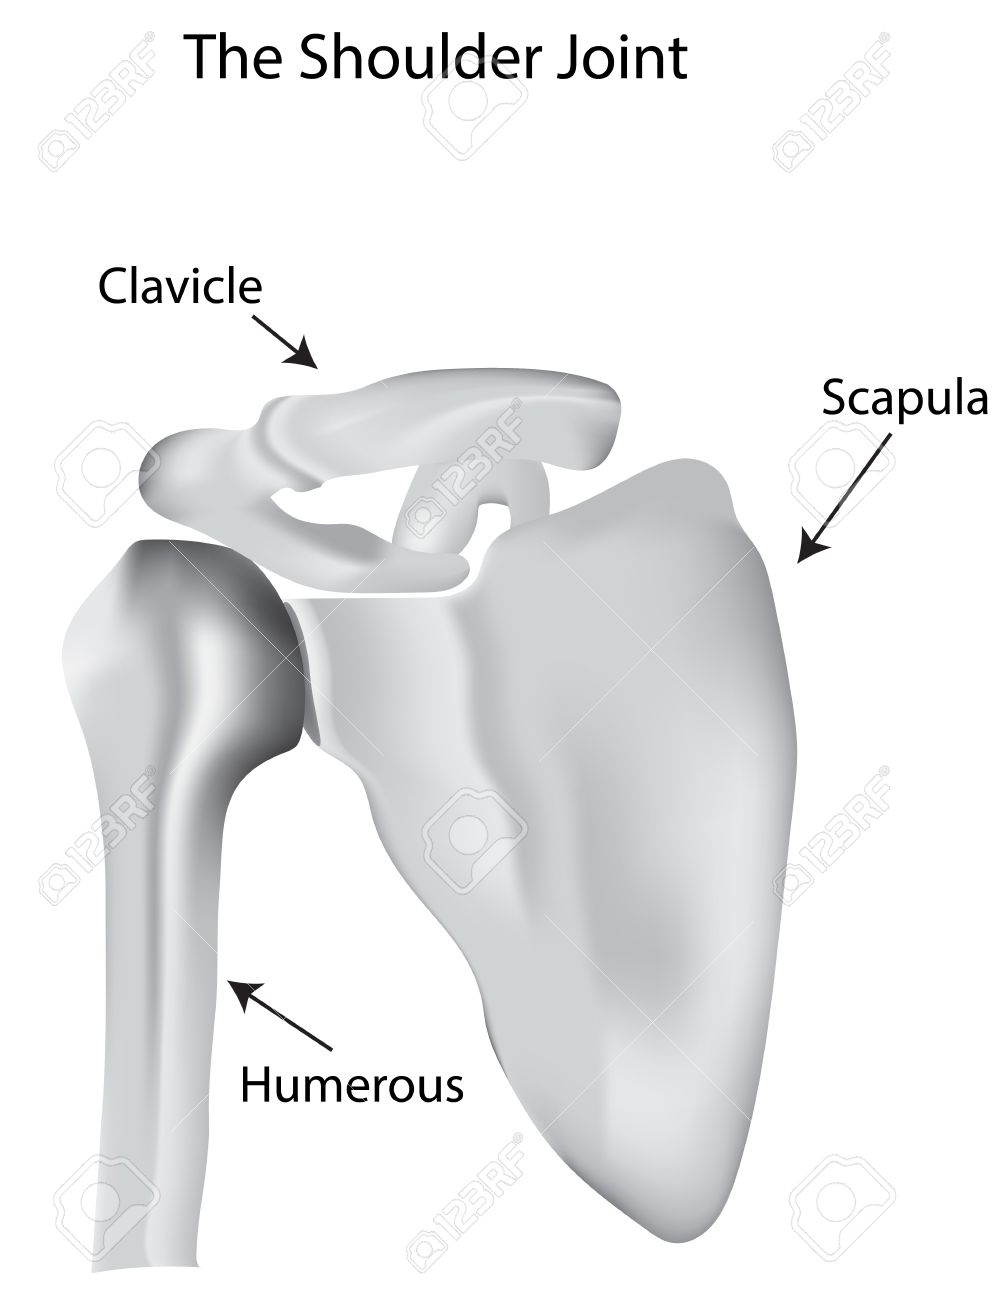 The Shoulder Joint Labeled Diagram Royalty Free Cliparts, Vectors ...